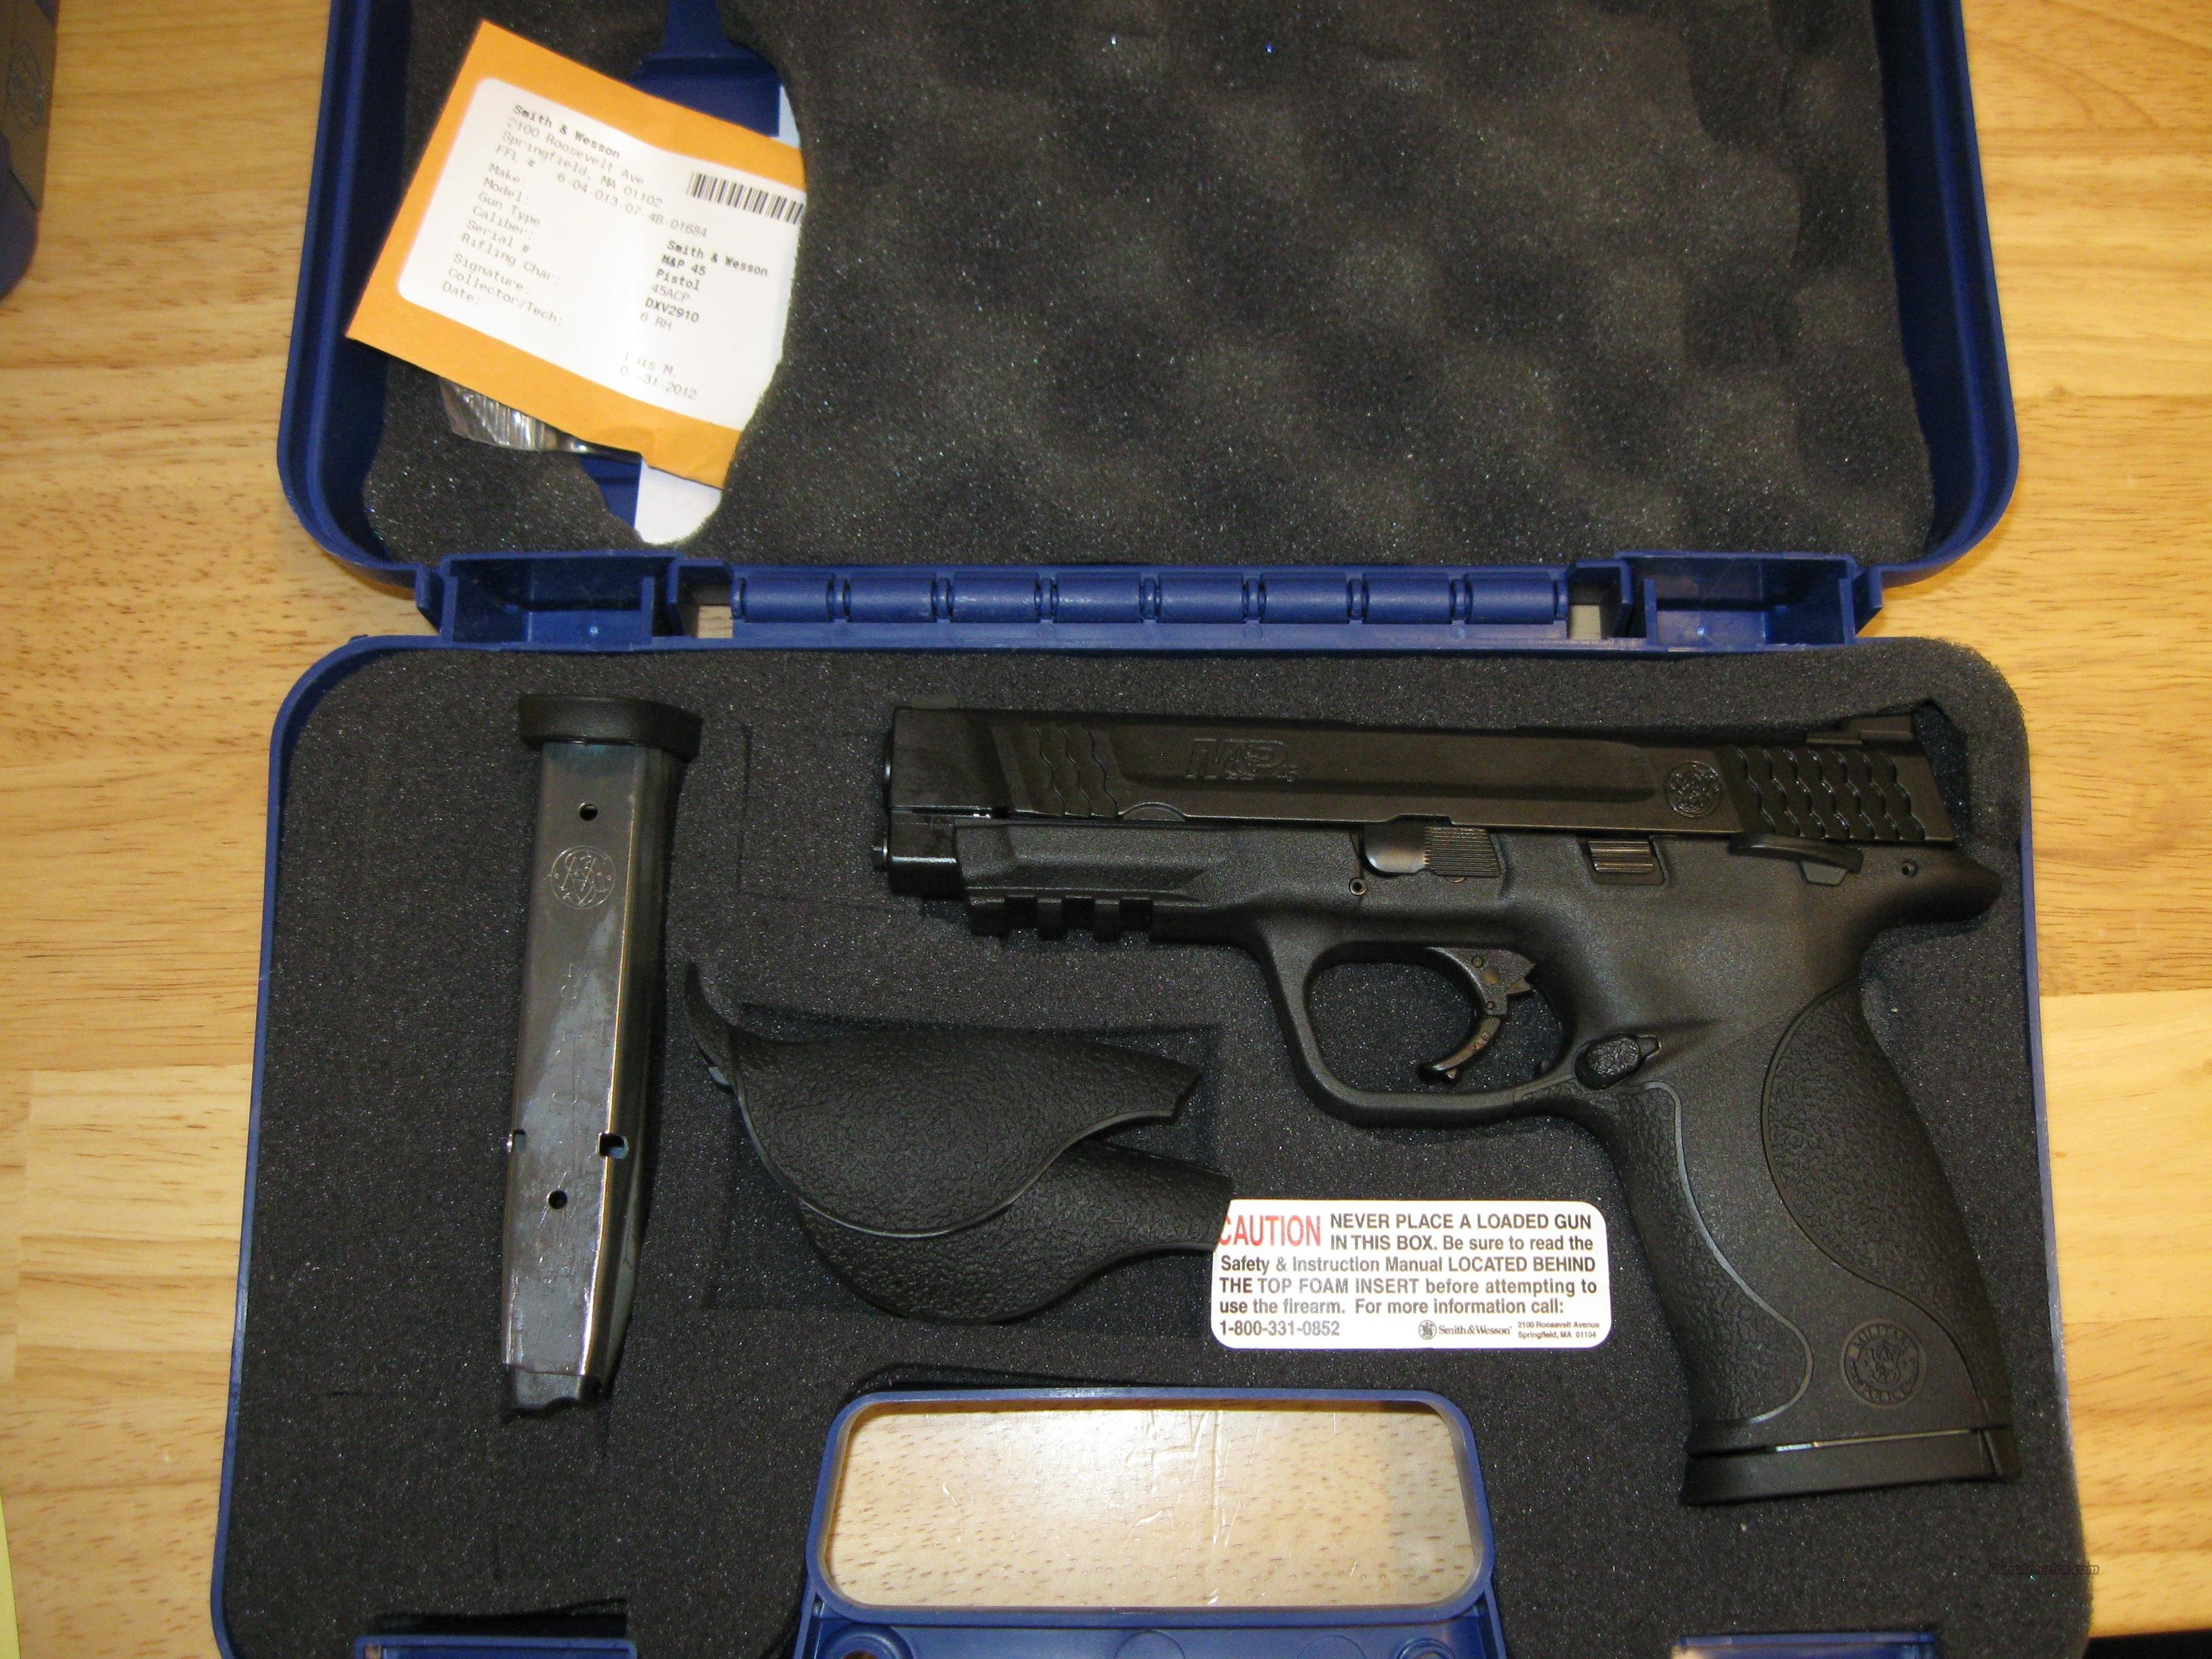 "Smith & Wesson M&P 45 Pistol 109106, 45 ACP, 4 1/2"", Plastic Grip, Black Finish, 10 Rd, Lanyard Ring  Guns > Pistols > Smith & Wesson Pistols - Autos > Polymer Frame"